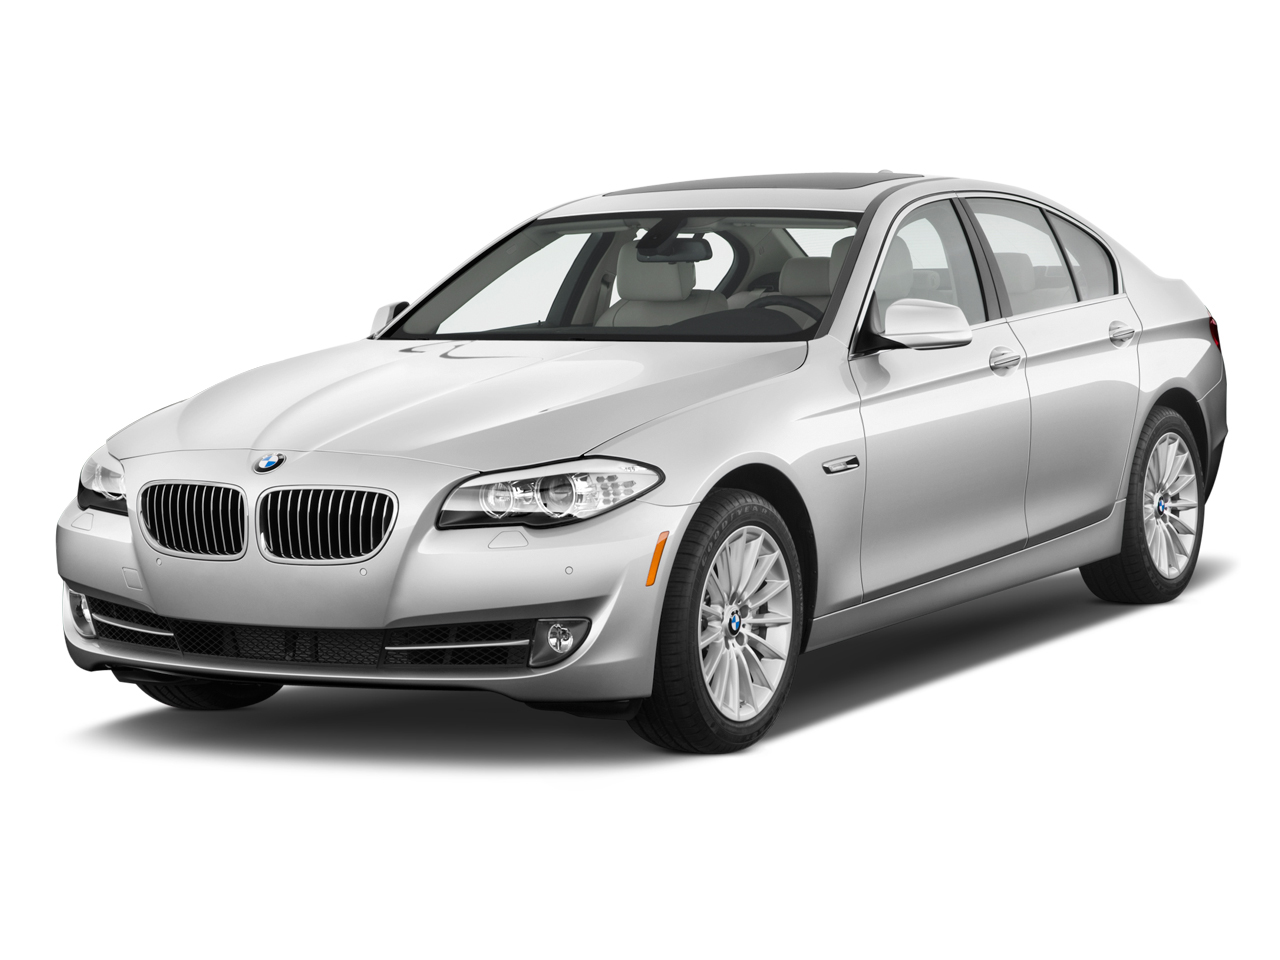 2011 Bmw 5 Series Review Ratings Specs Prices And Photos The Car Connection